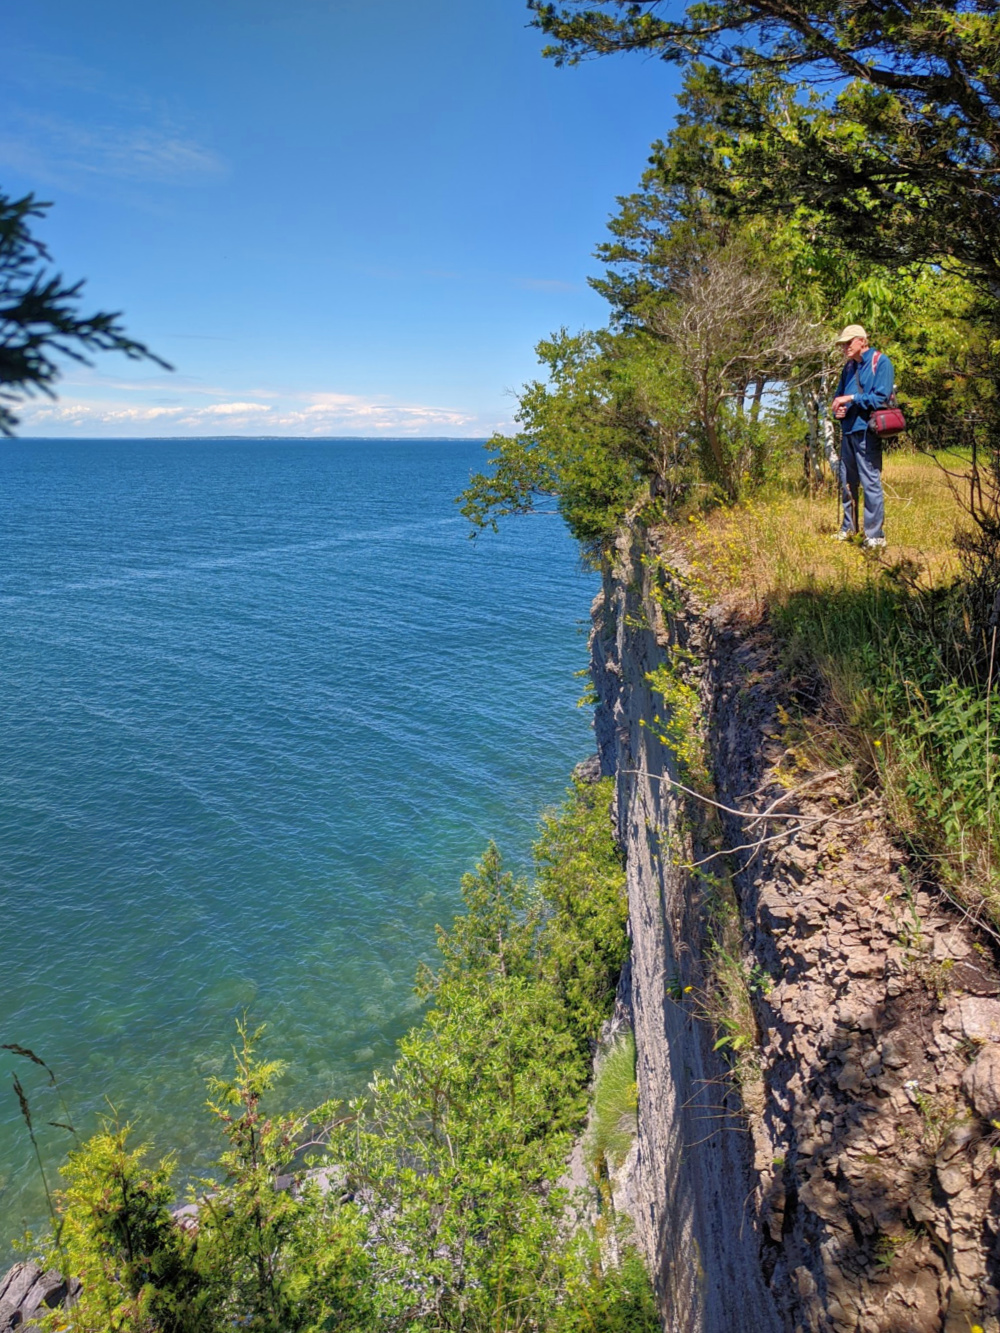 High cliffs at Robert G. Wehle State Park in Lake Ontario in New York.